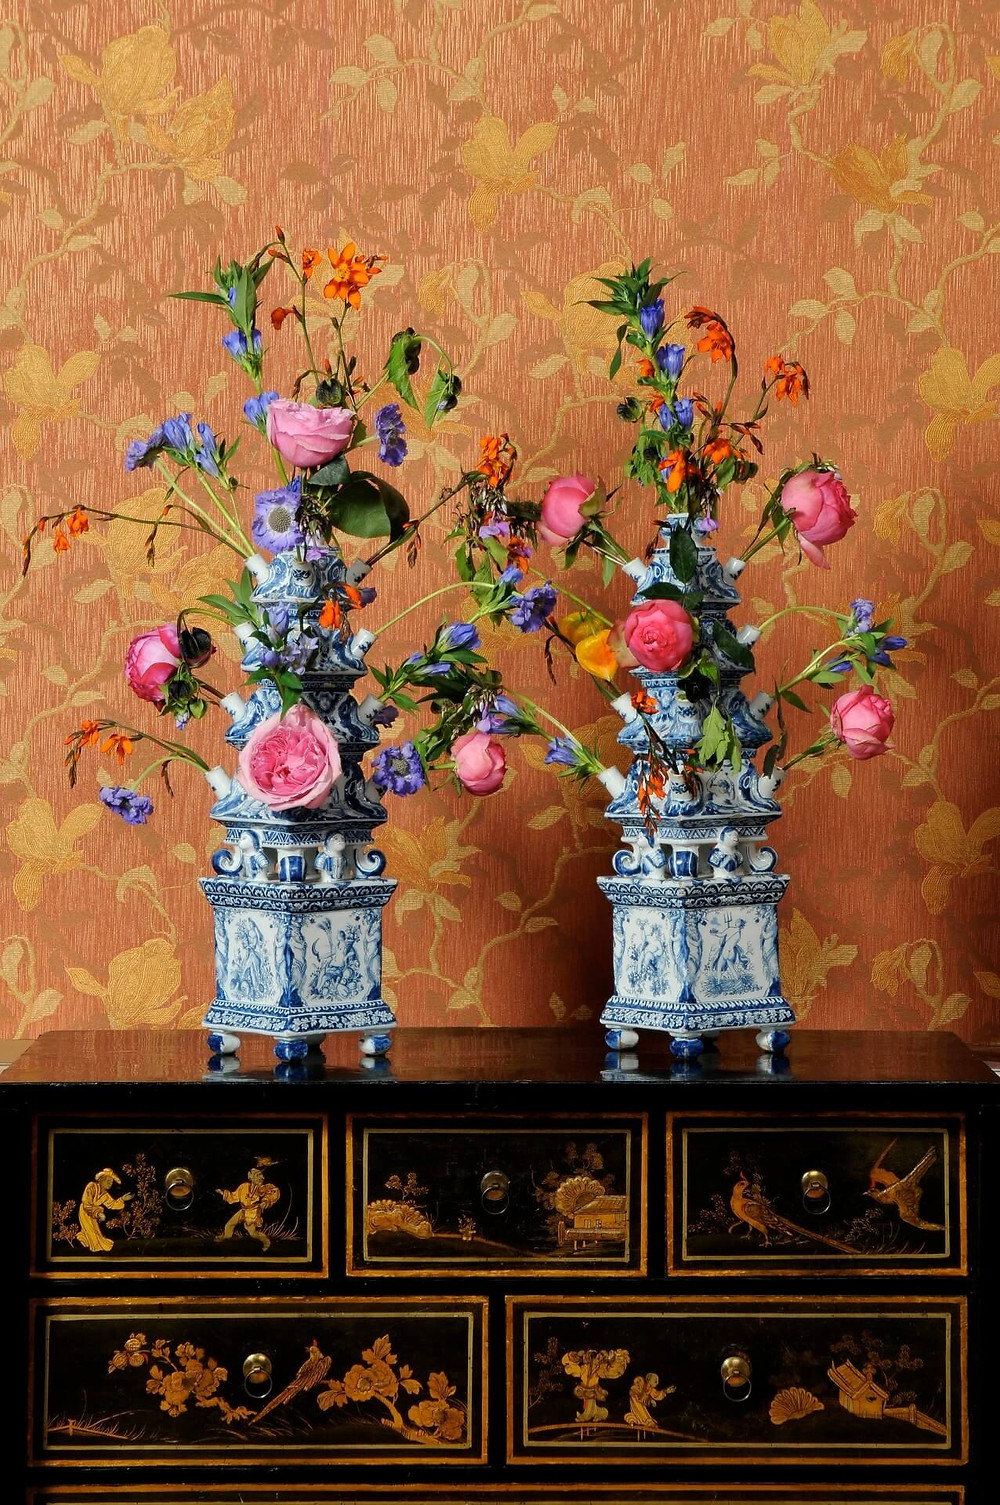 Two tulipieres, blue and white porcelain, flowers, roses, chinoiserie cabinent